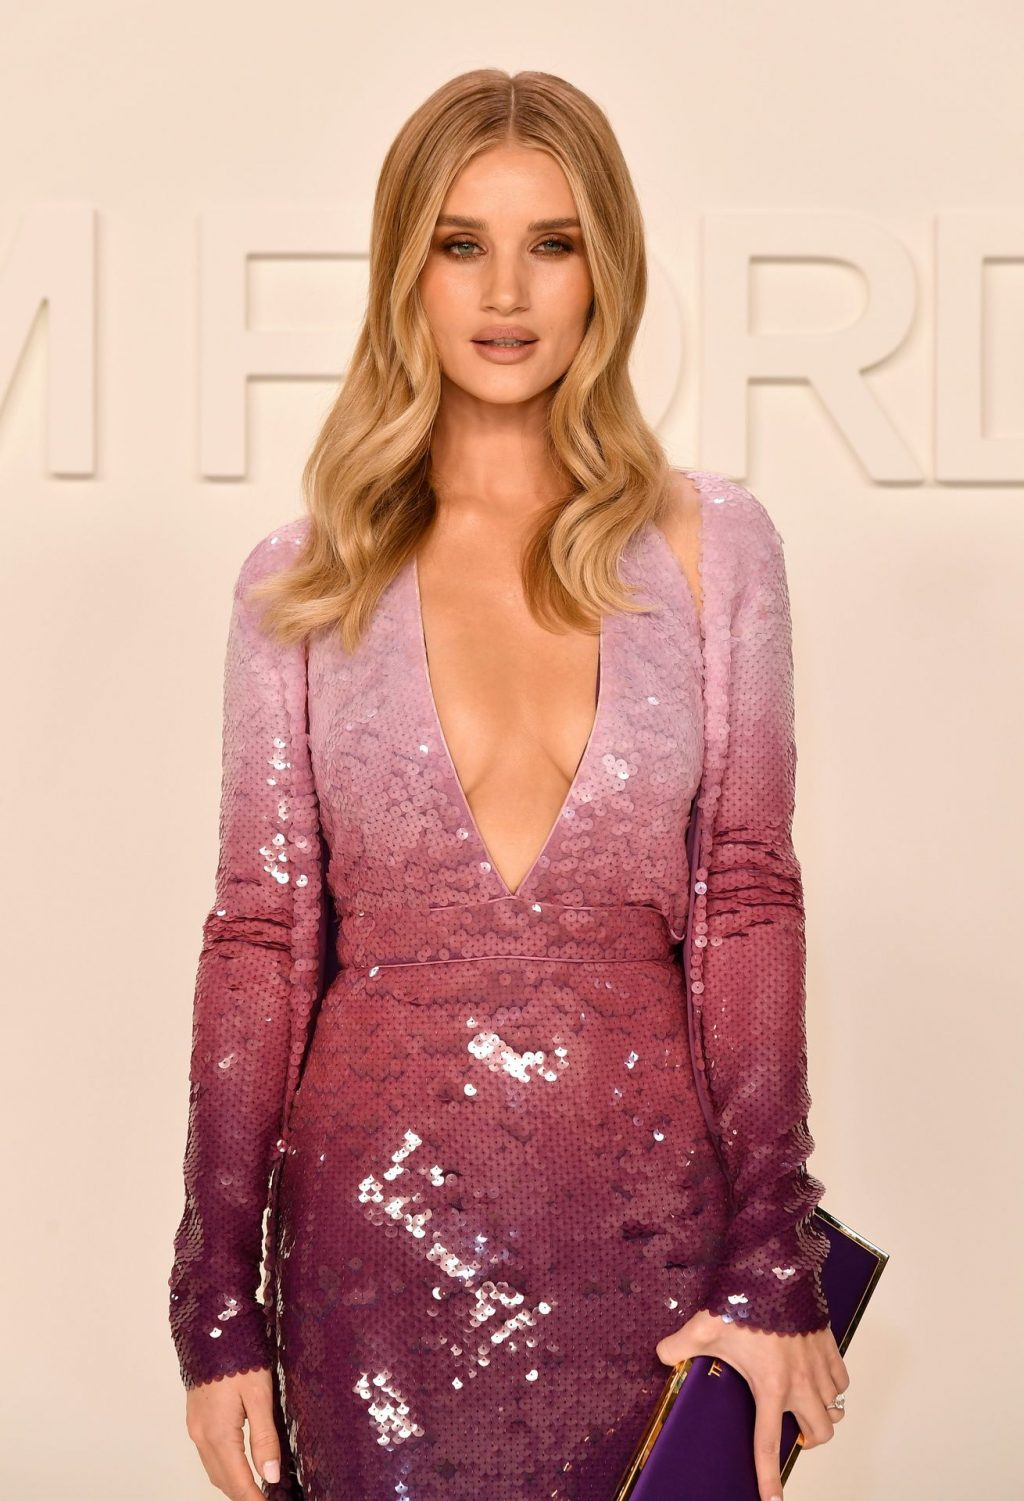 Rosie Huntington Whiteley Sexy The Fappening Blog 8 1024x1501 - Rosie Huntington-Whiteley Shows Her Cleavage at the Tom Ford Fashion Show (115 Photos)